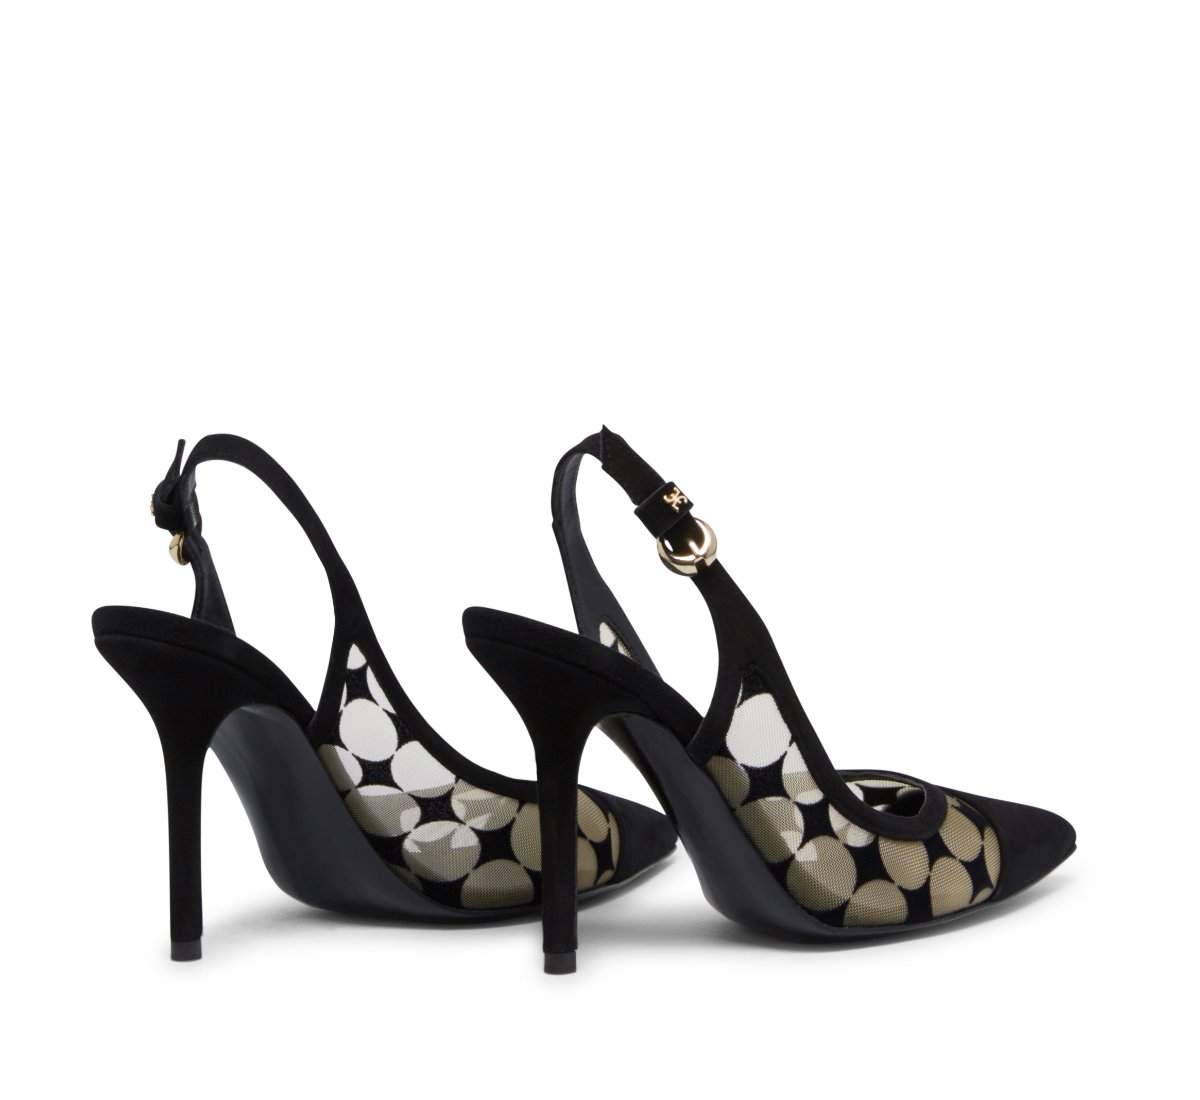 Slingback Fabi Optical in suede and mesh